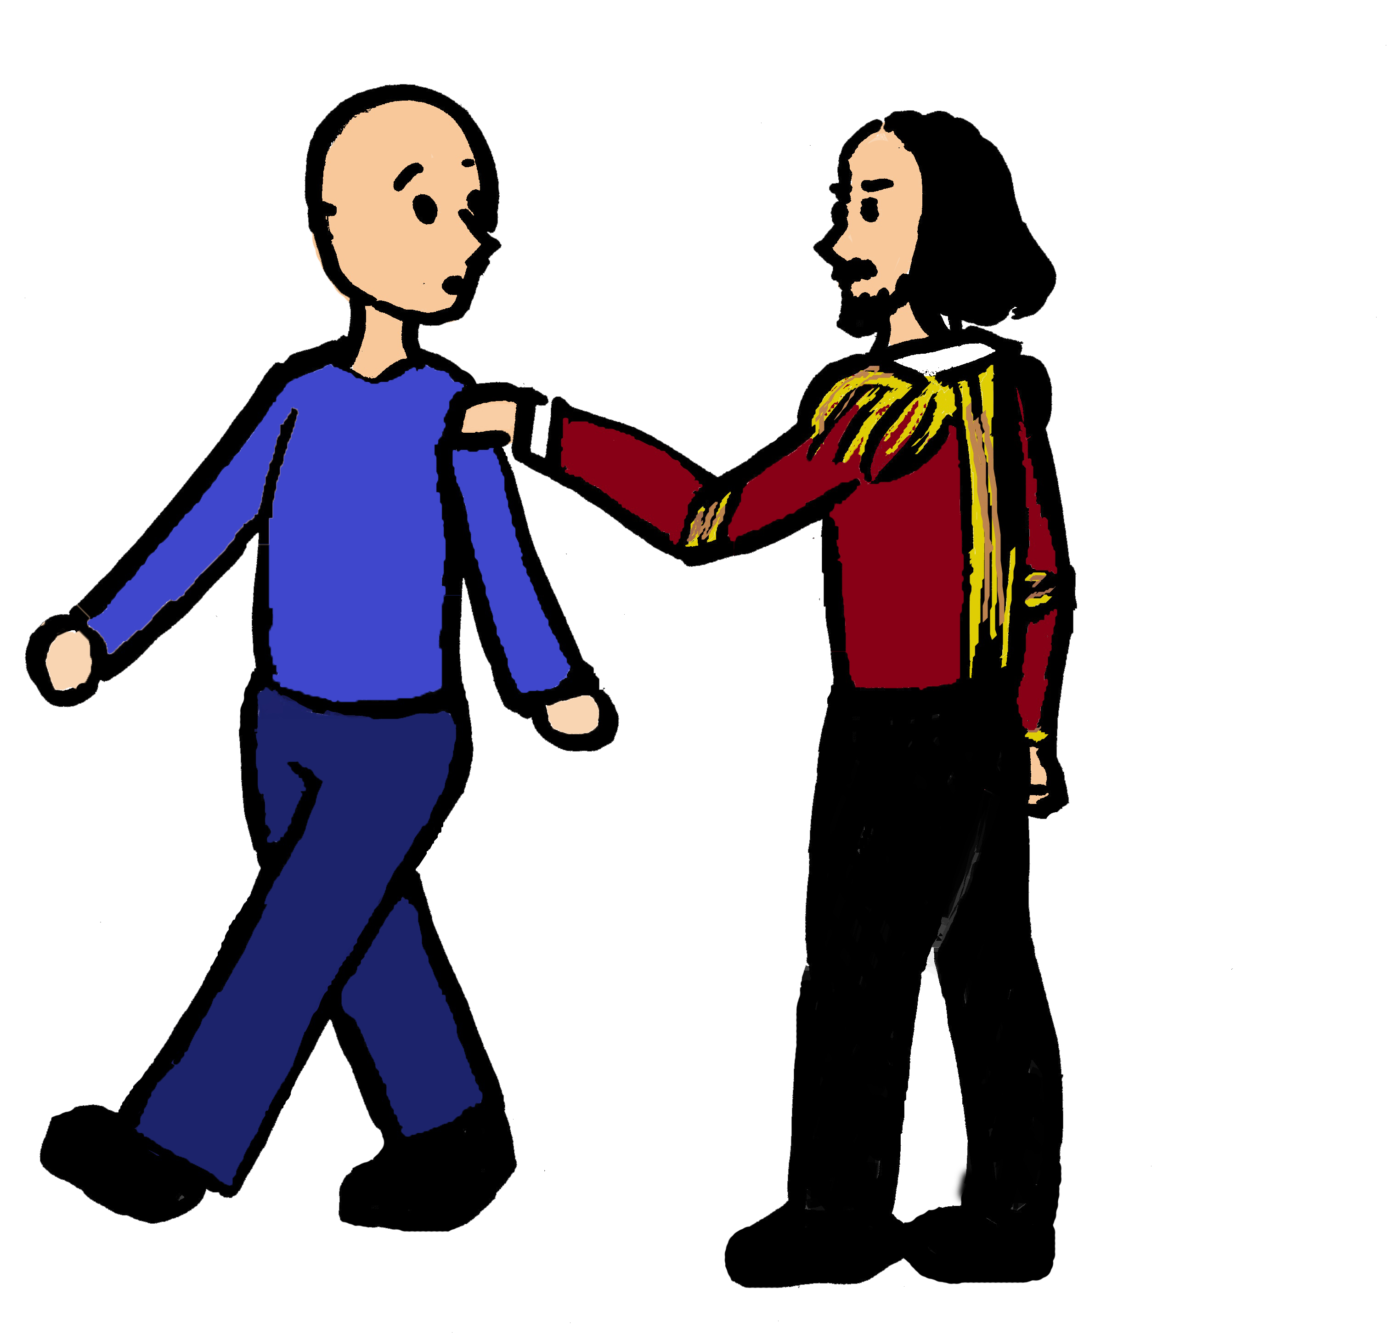 relevance of shakespeare today Relevance of shakespeare's macbeth by evelynoconnor on june 1, 2014 1 comment in my classroom, at parent-teacher meetings, even chatting to acquaintances, i often get eye-rolls at the mention of shakespeare.